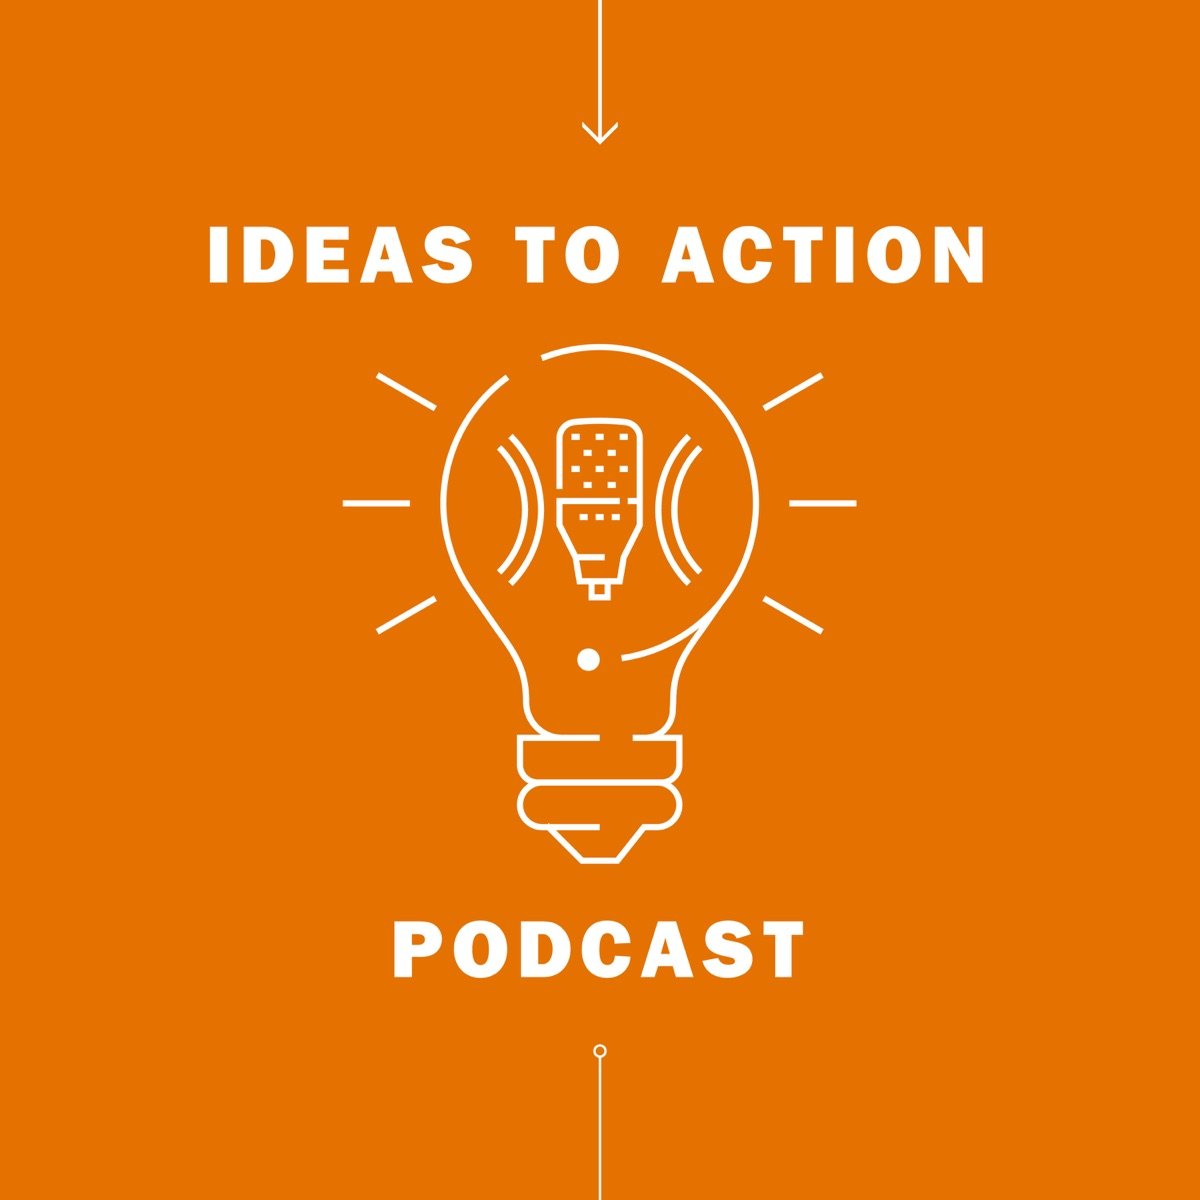 Darden Ideas to Action